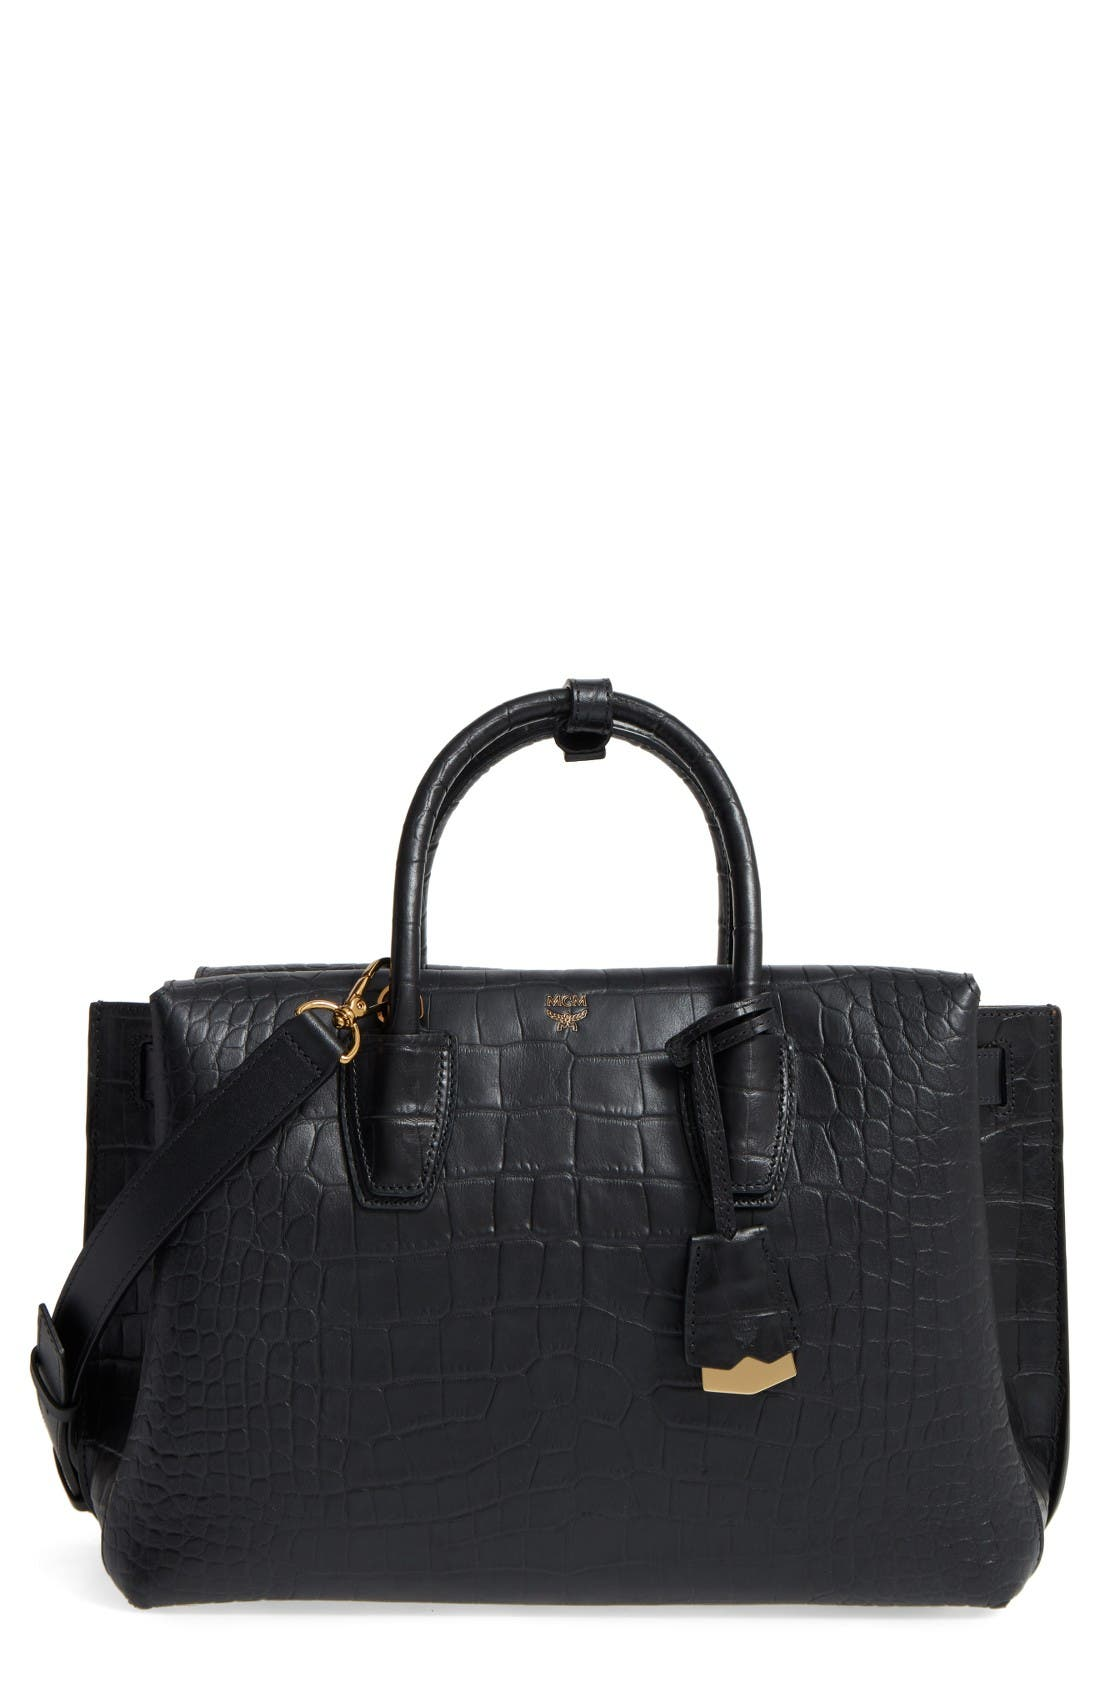 Main Image - MCM Medium Milla Croc Embossed Leather Tote